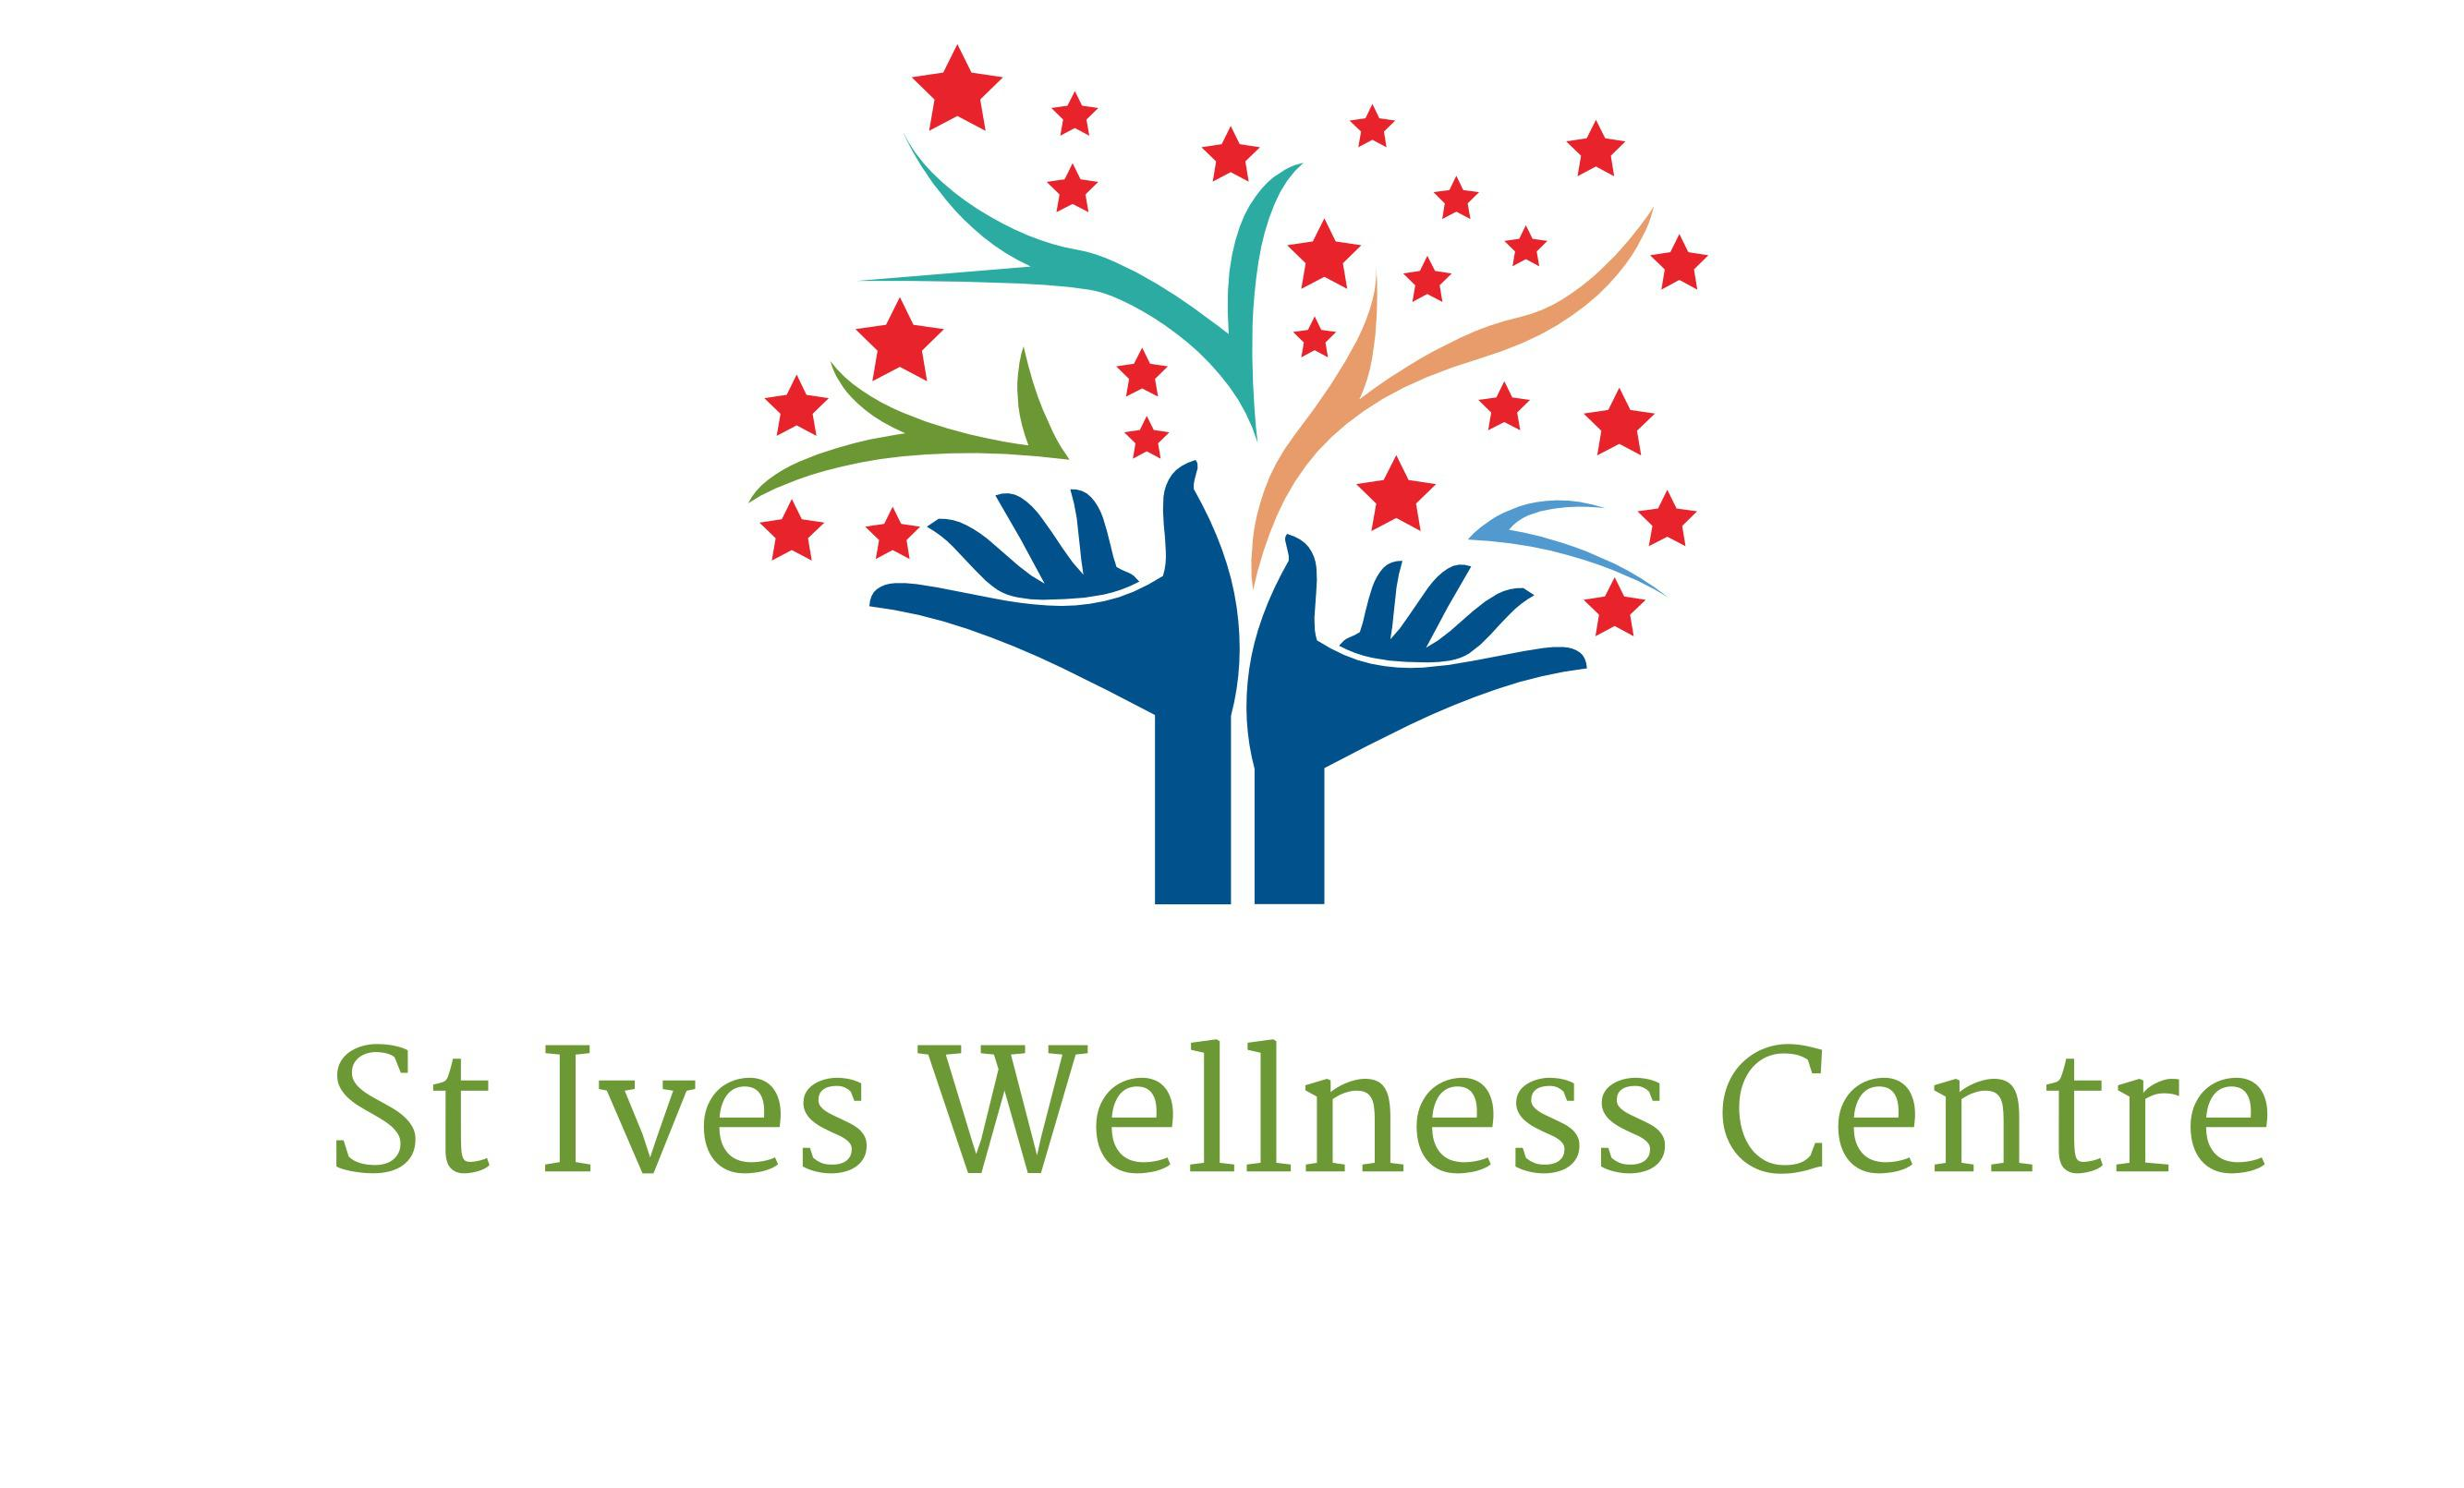 St Ives Wellness Centre Logo